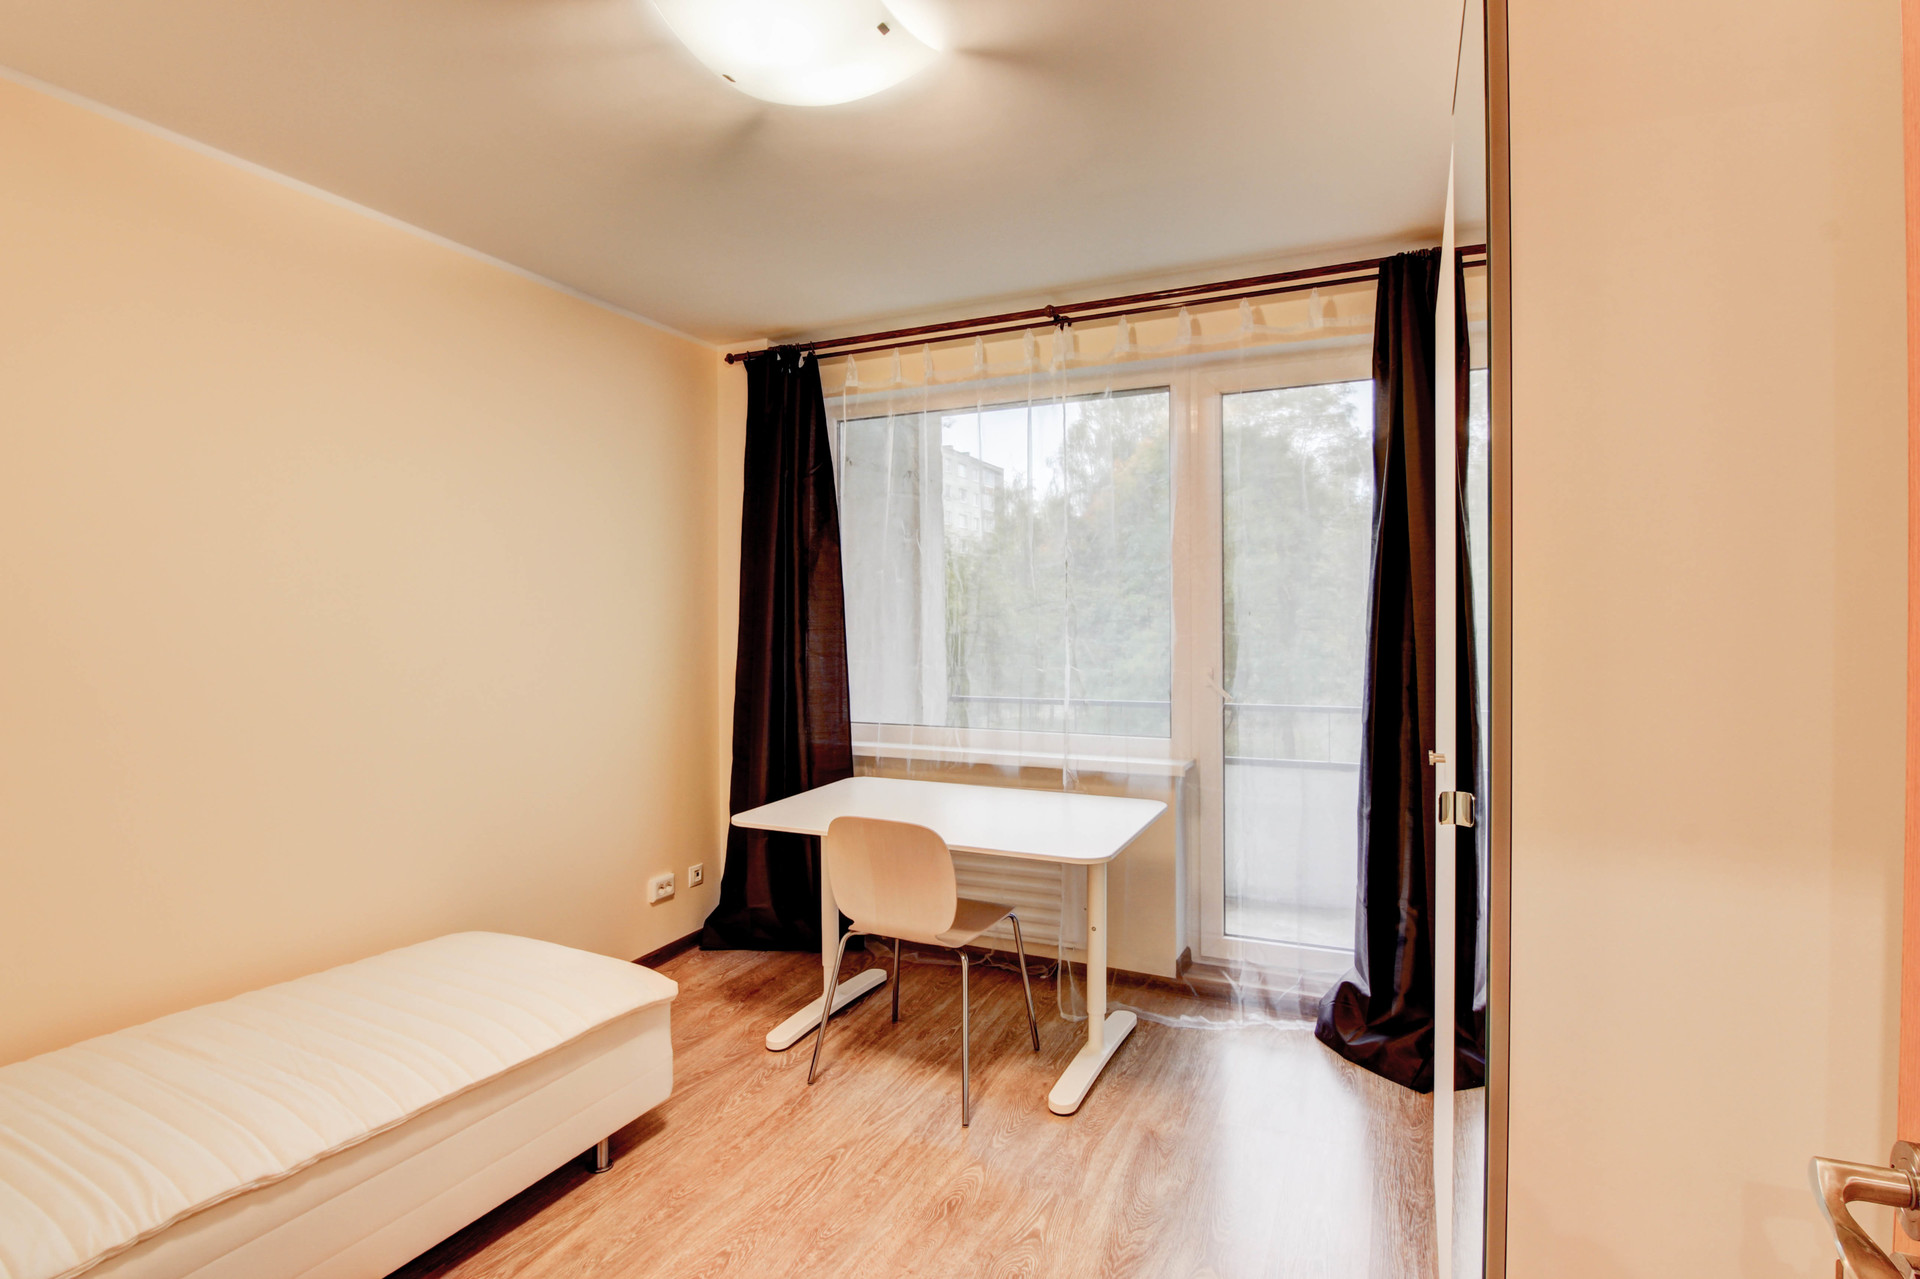 Nicely renovated room in 5-room apartment near the universities